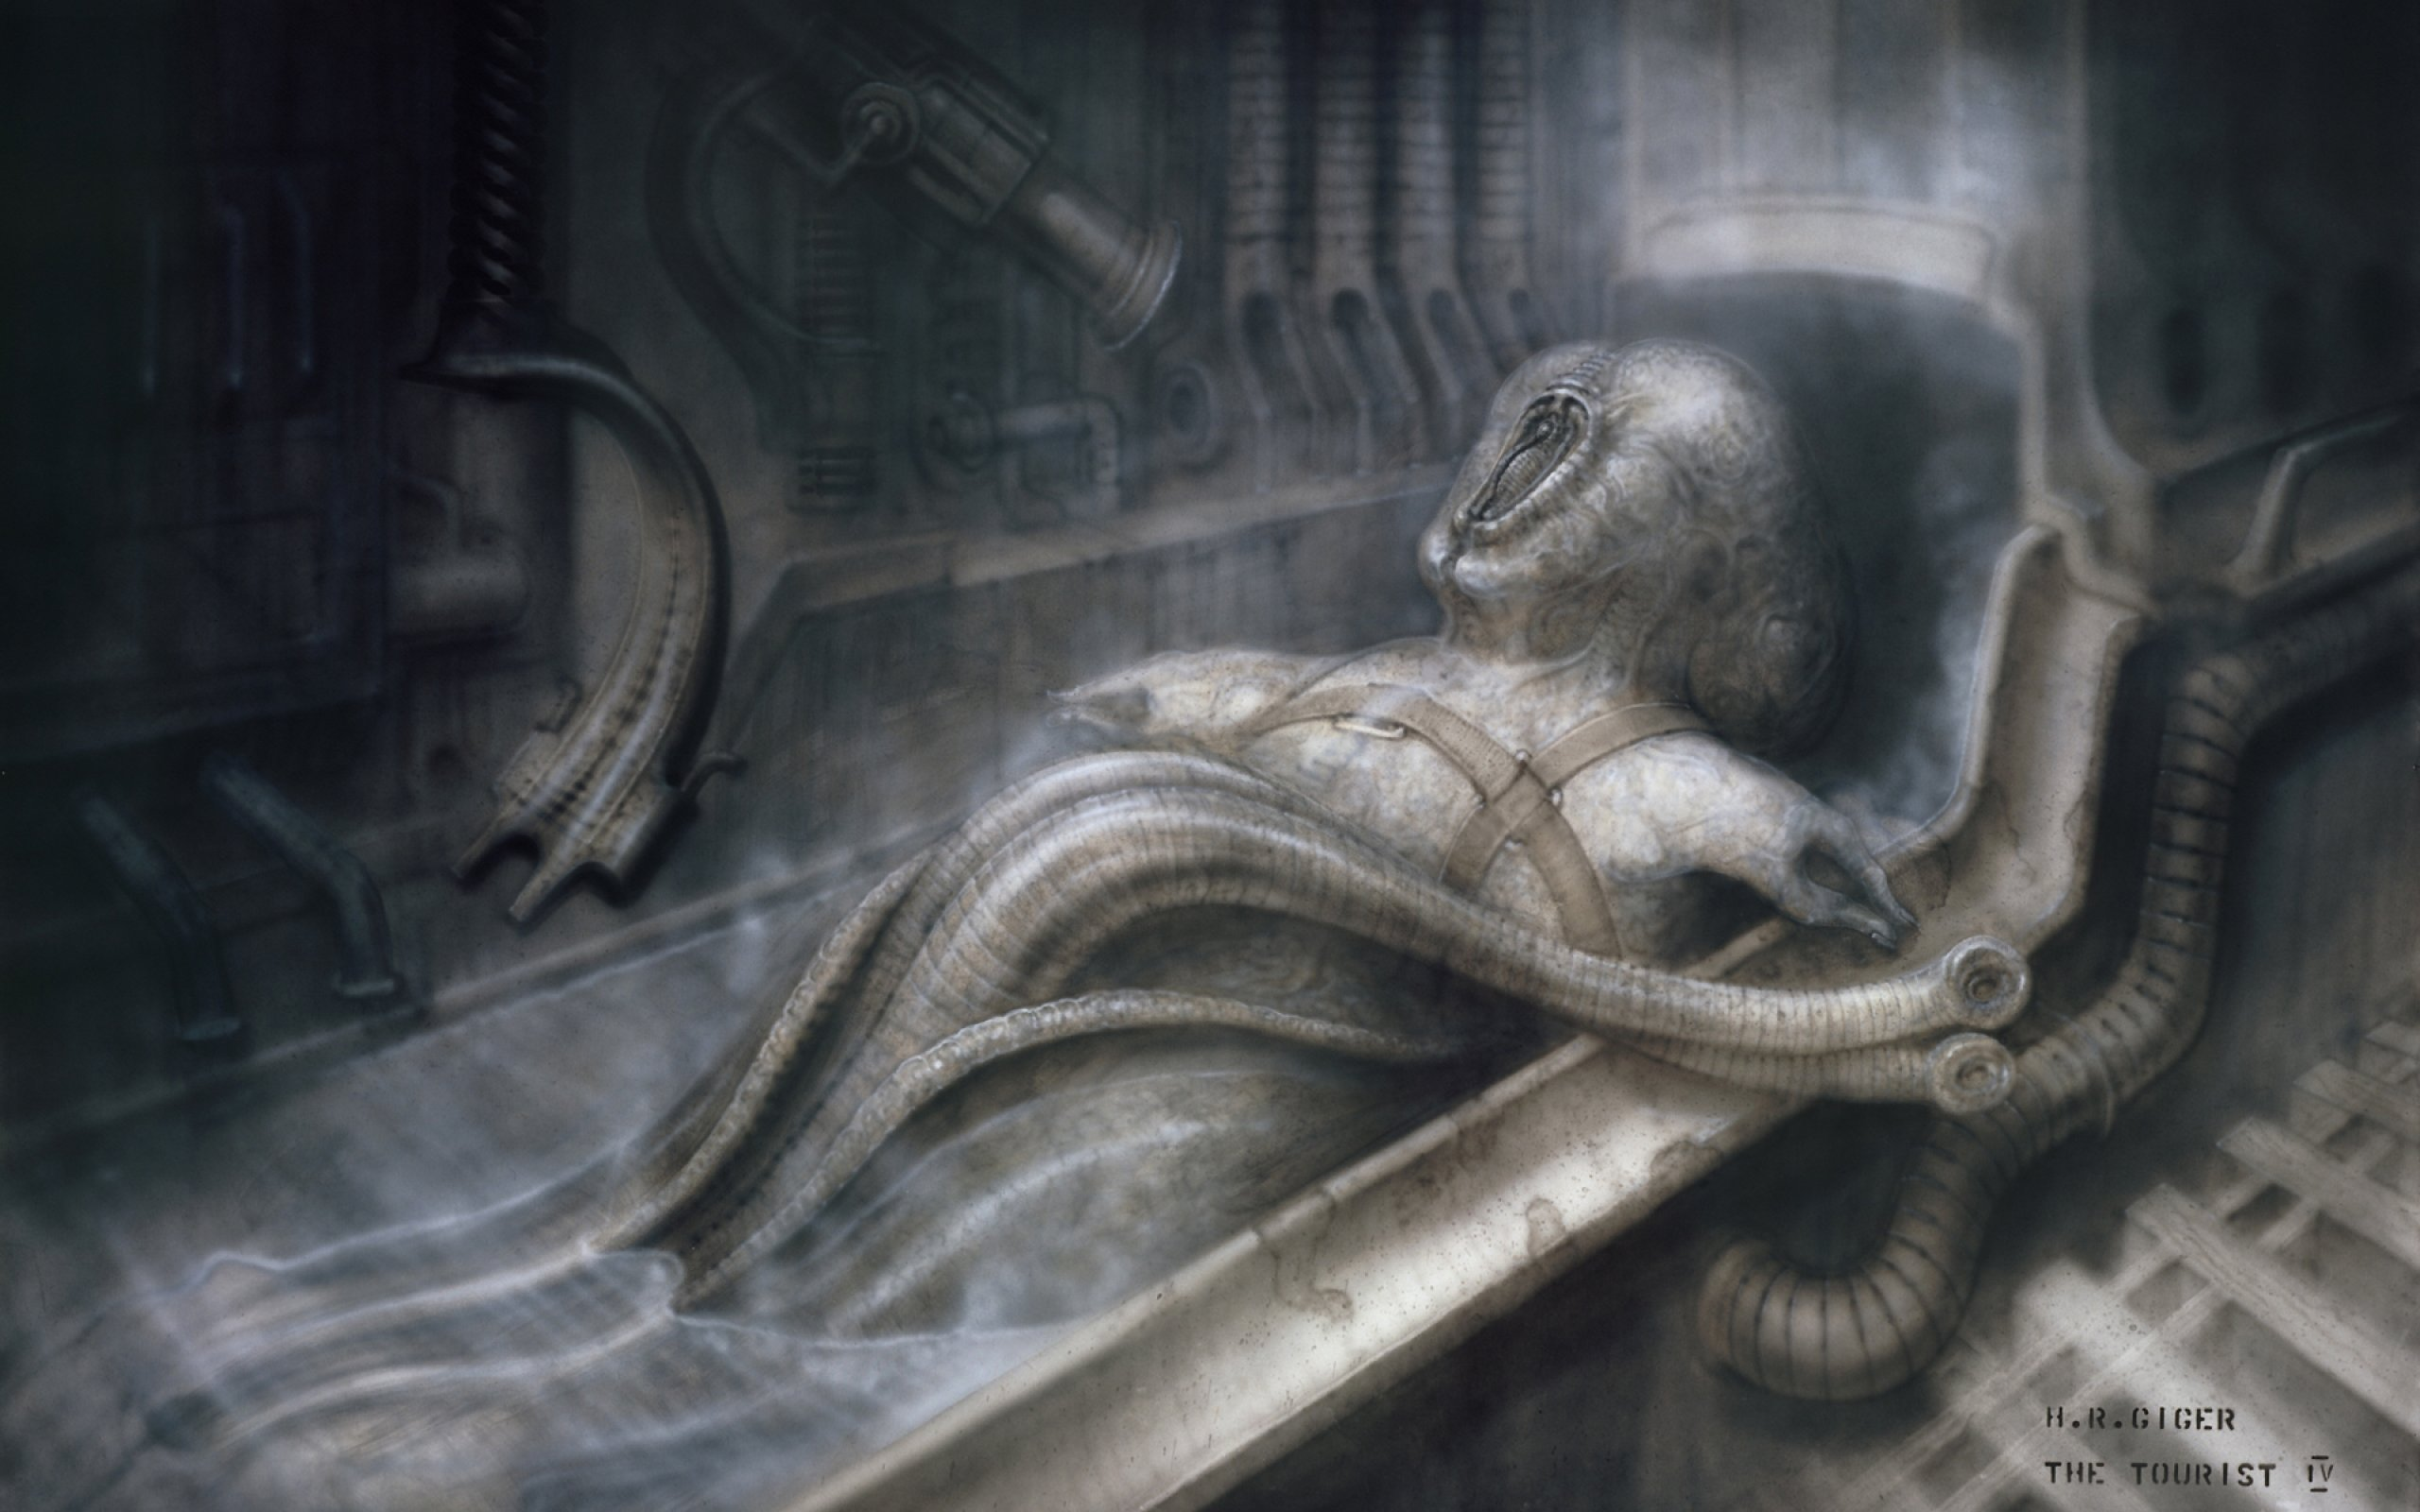 H R GIGER art artwork dark evil artistic horror fantasy ...